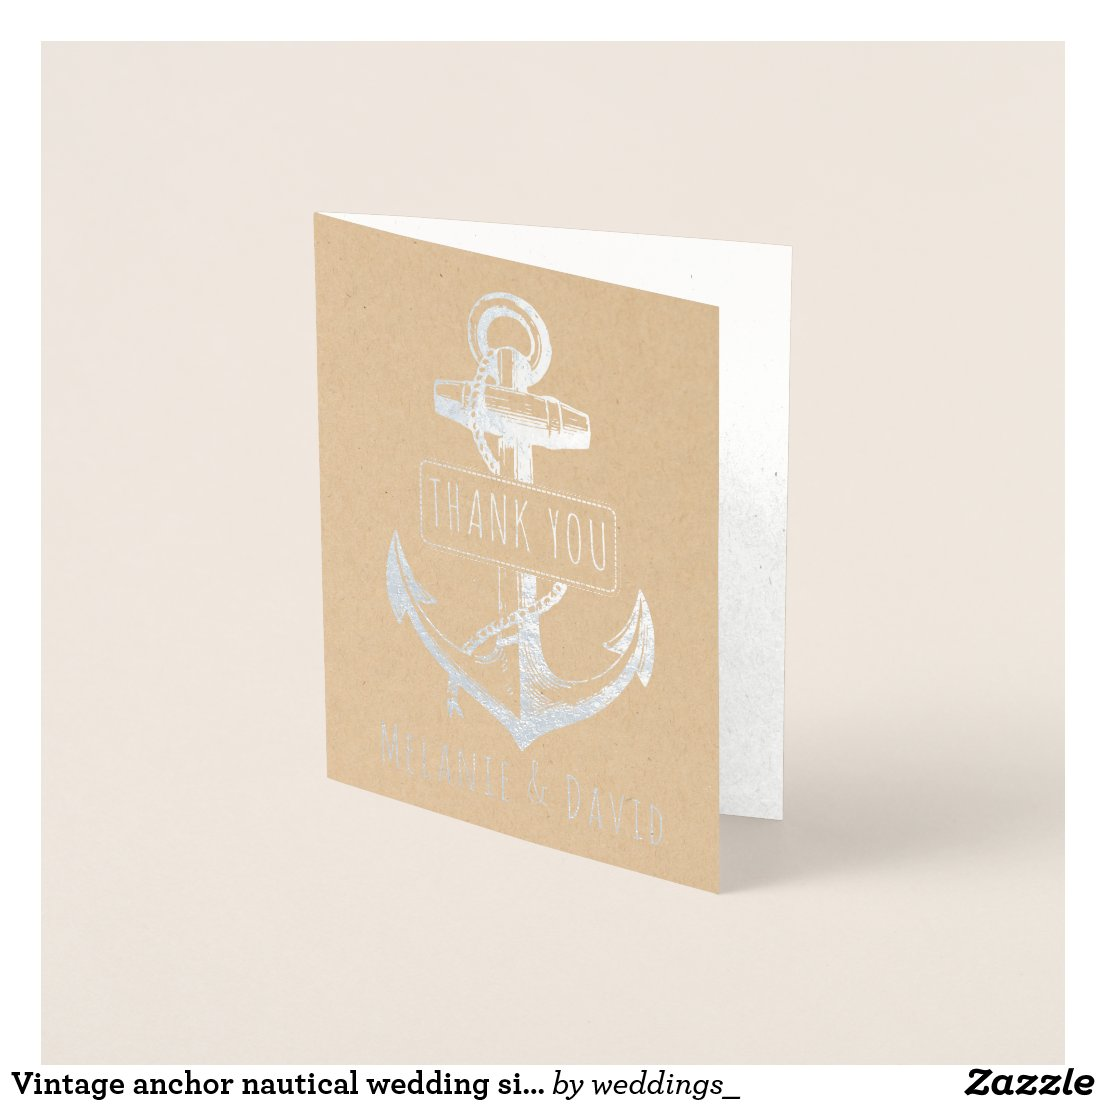 Vintage anchor nautical wedding silver foil card